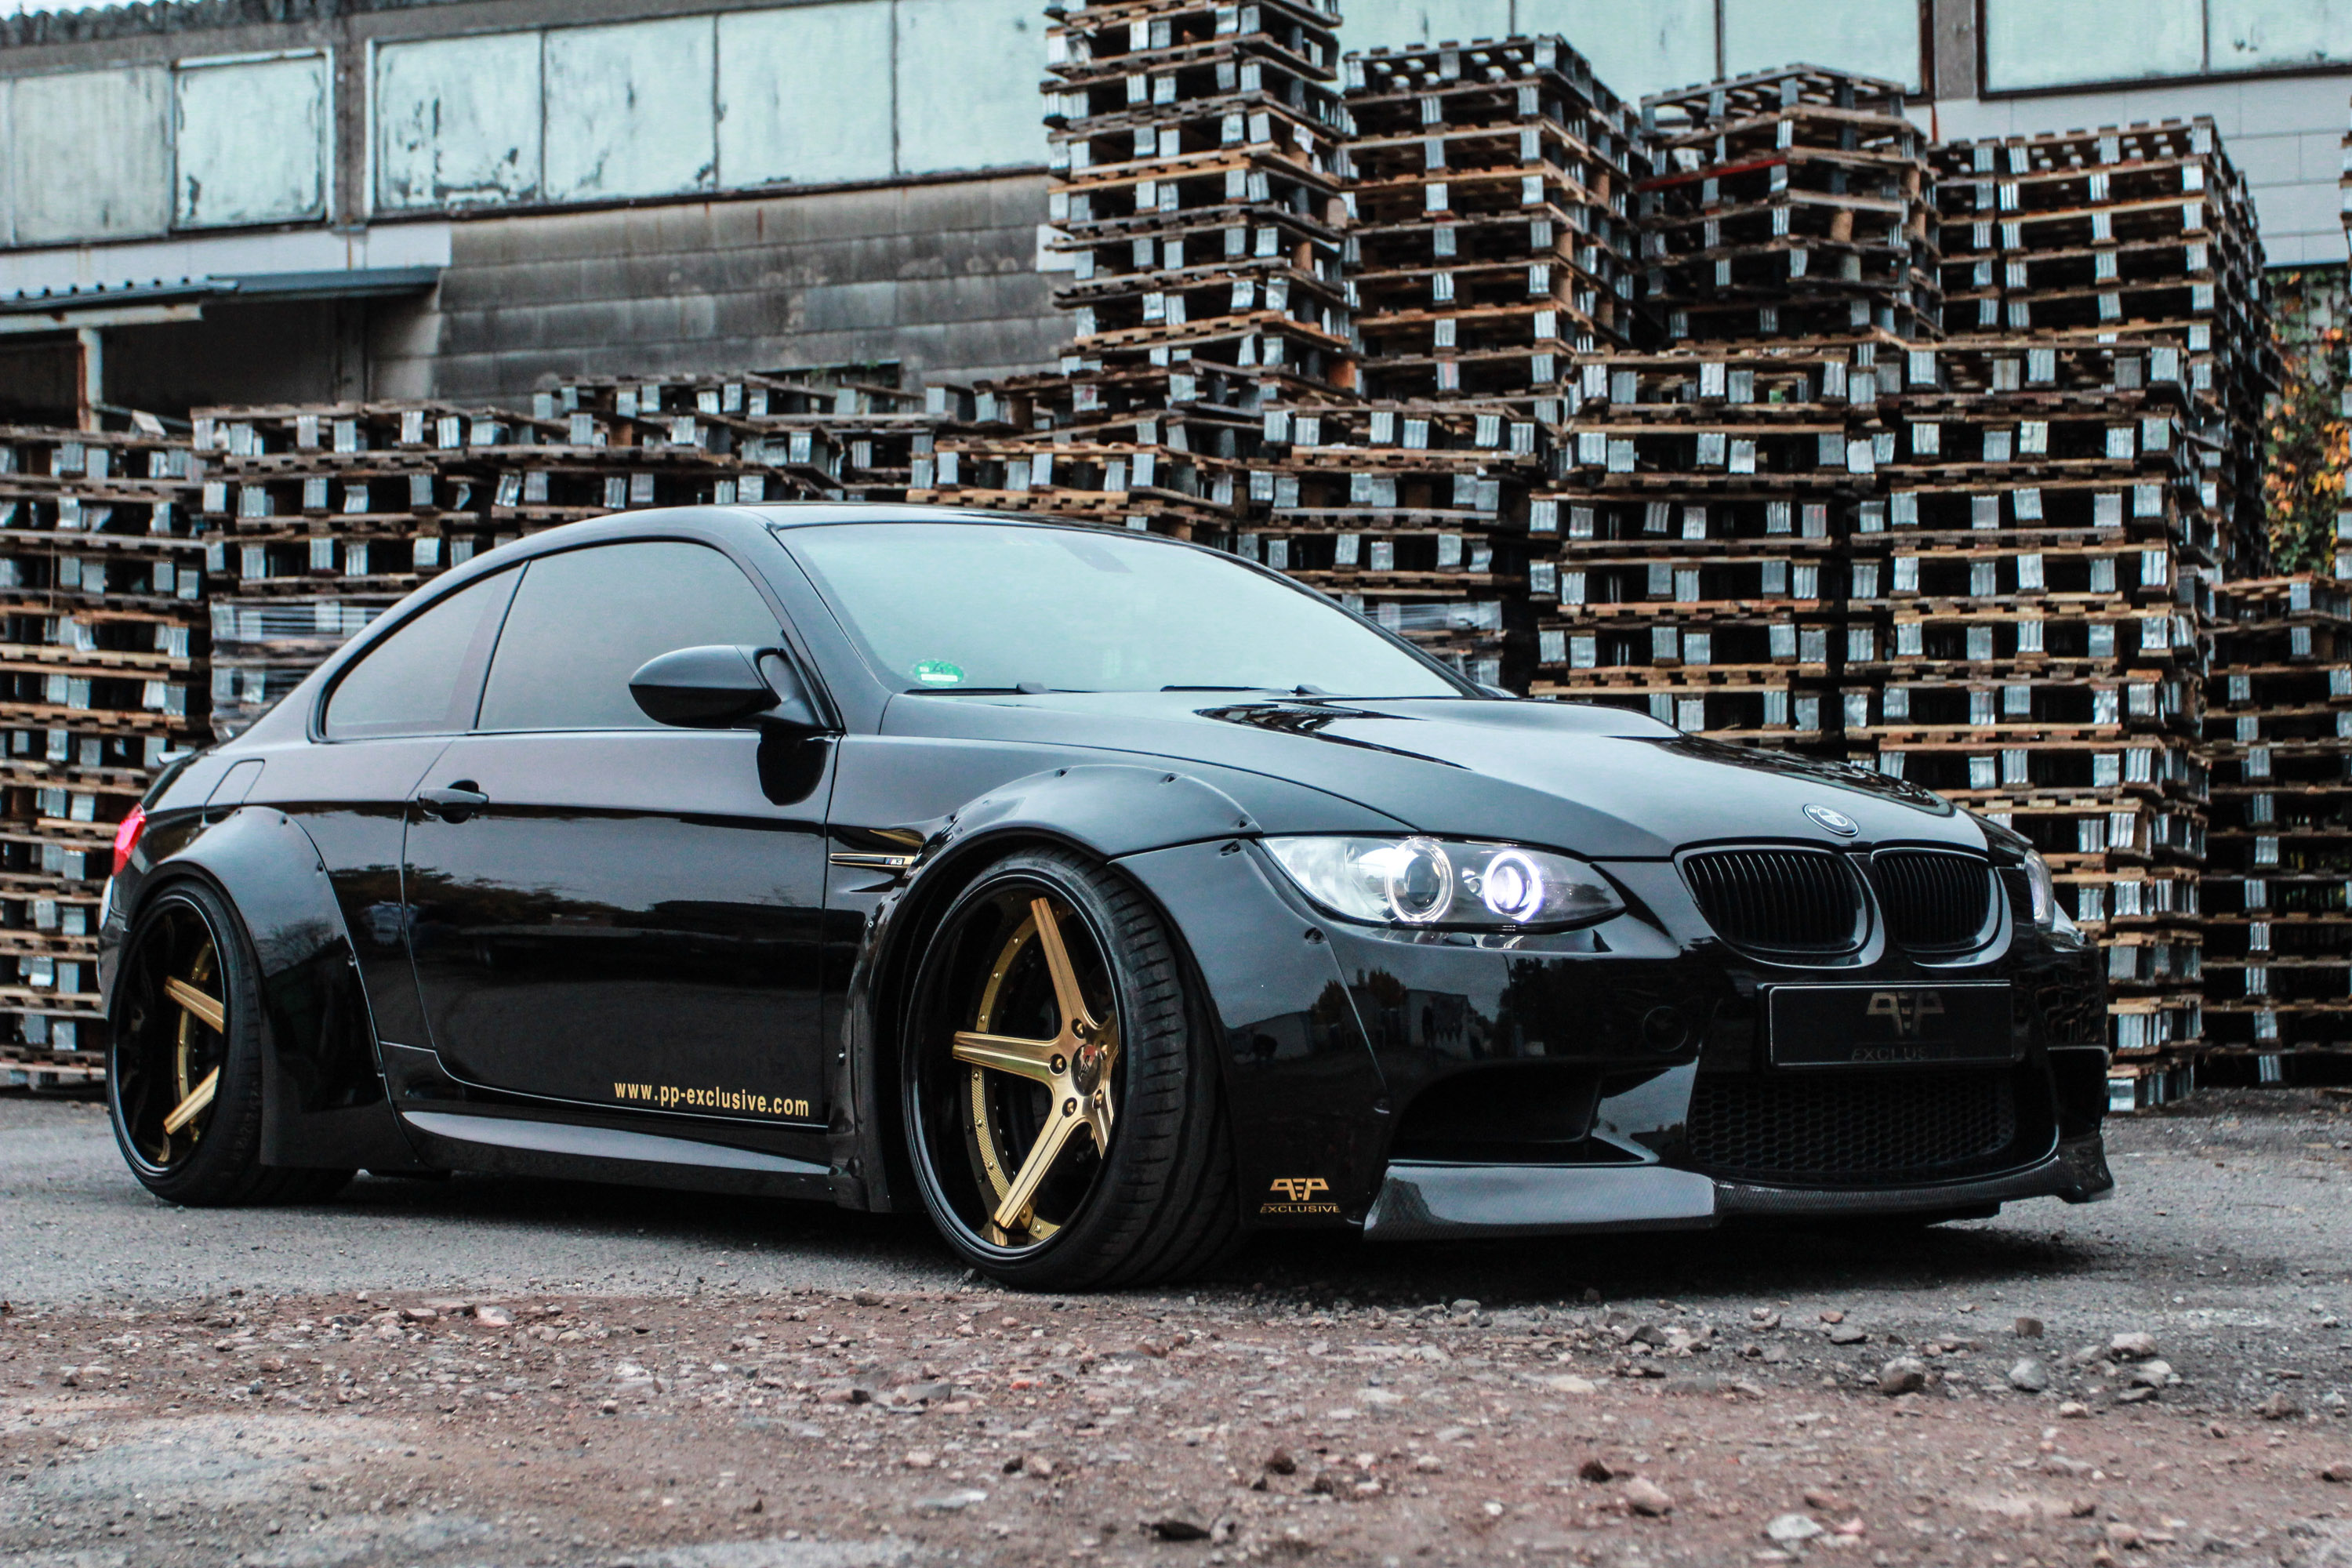 pp exclusive and liberty walk unite for monstrous bmw m3 based tuning. Black Bedroom Furniture Sets. Home Design Ideas